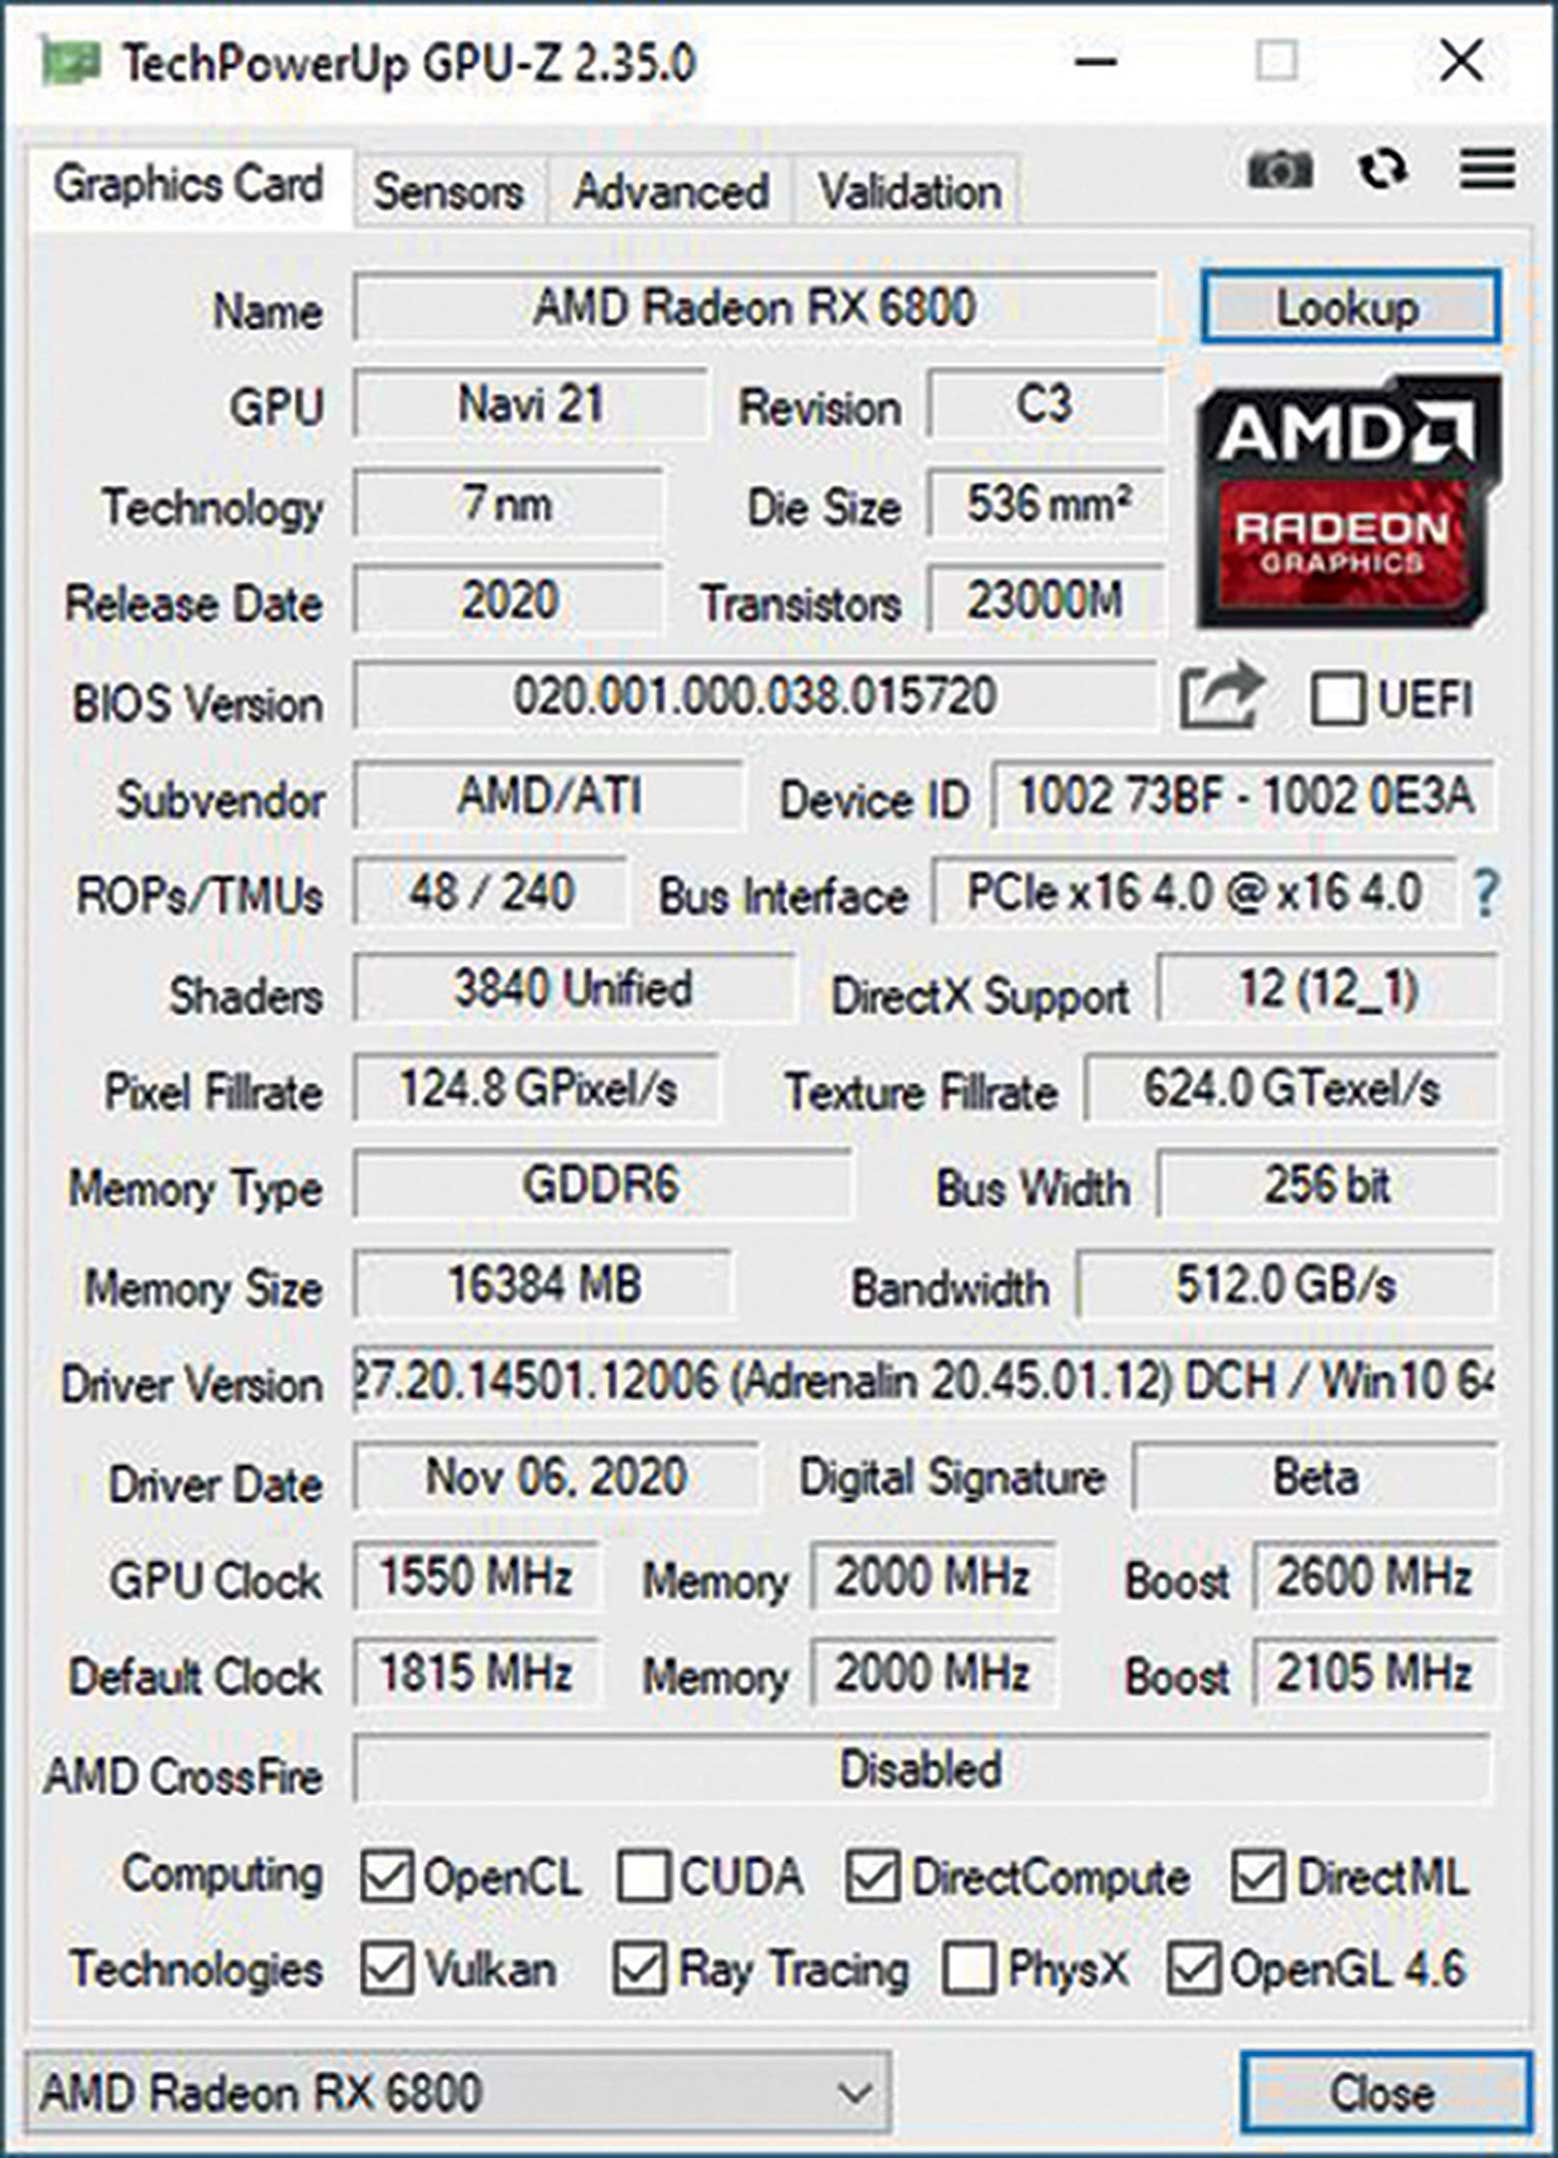 rx6800 boost 2600 mhz